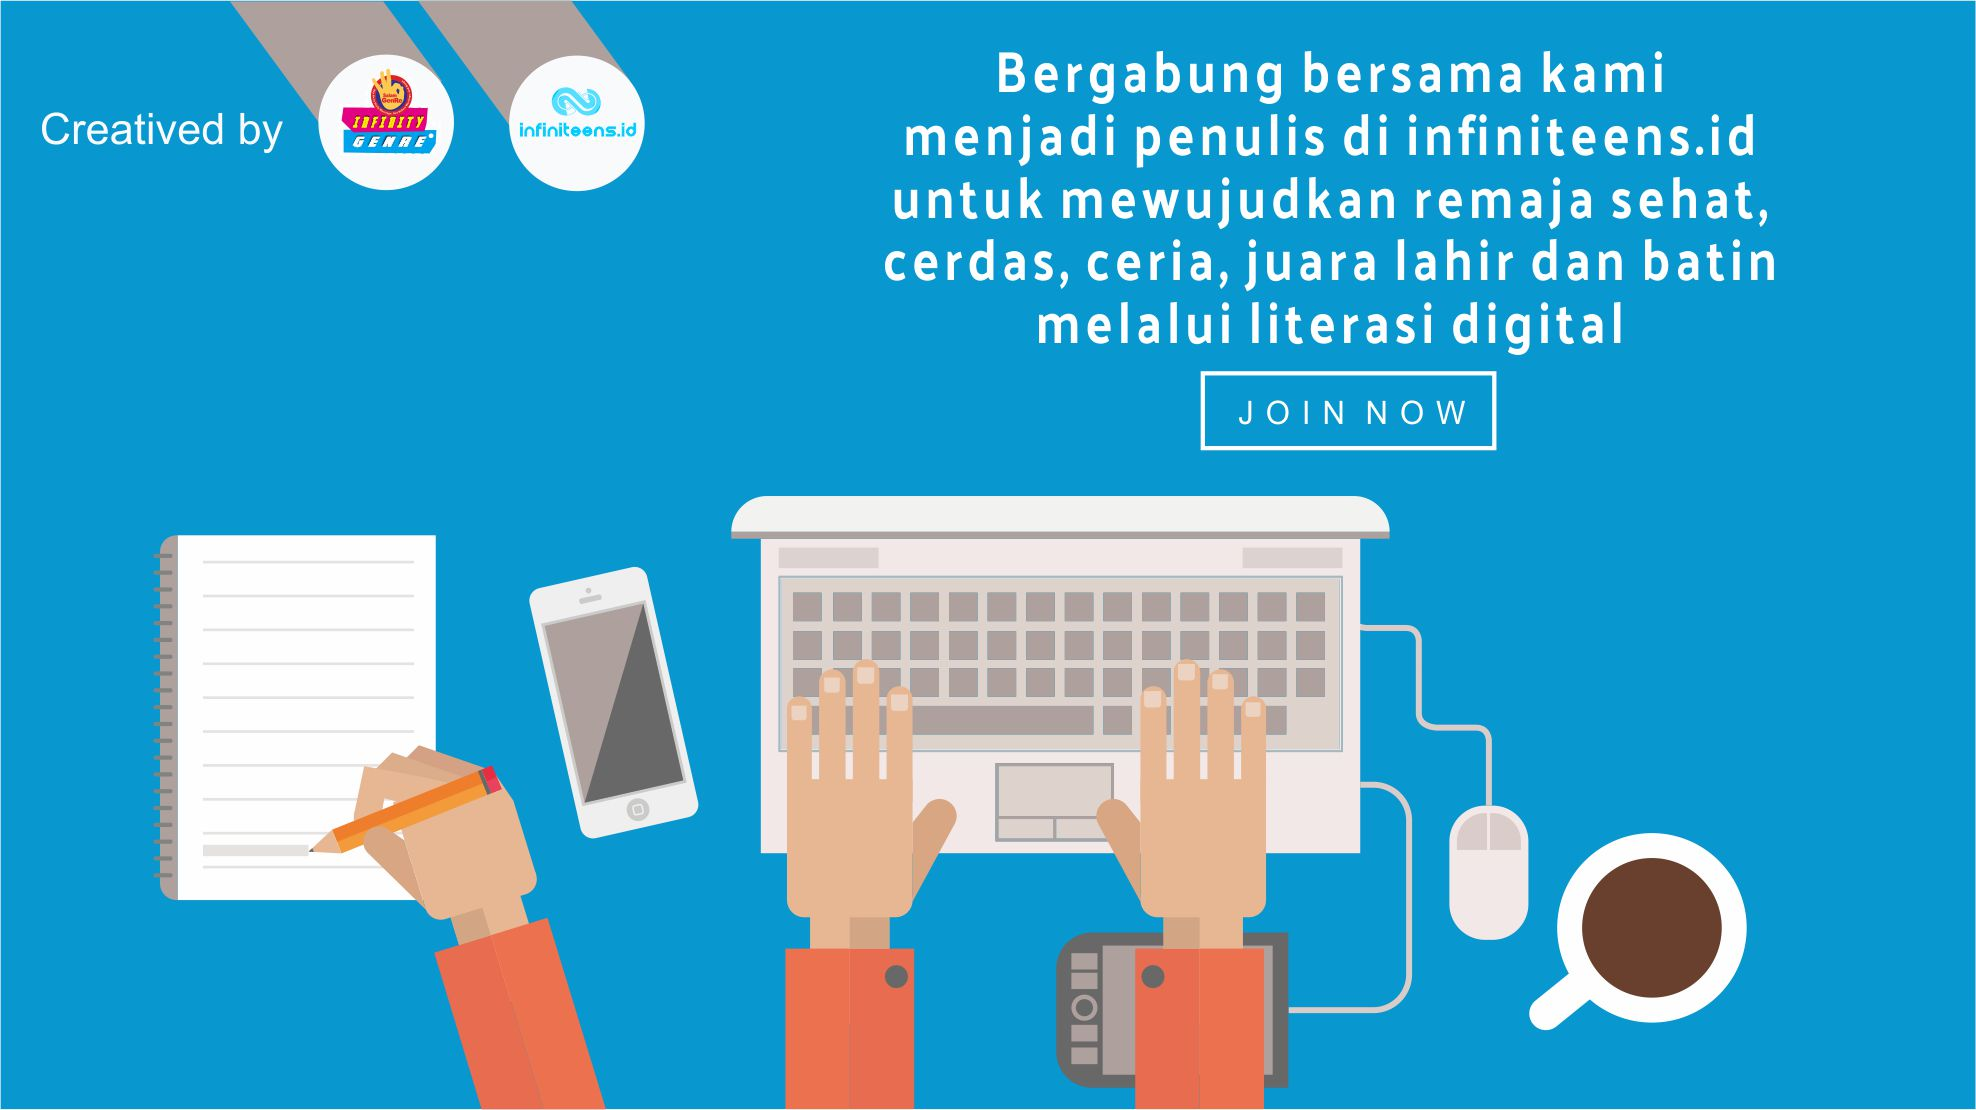 JOIN WITH INFINITEENS.ID